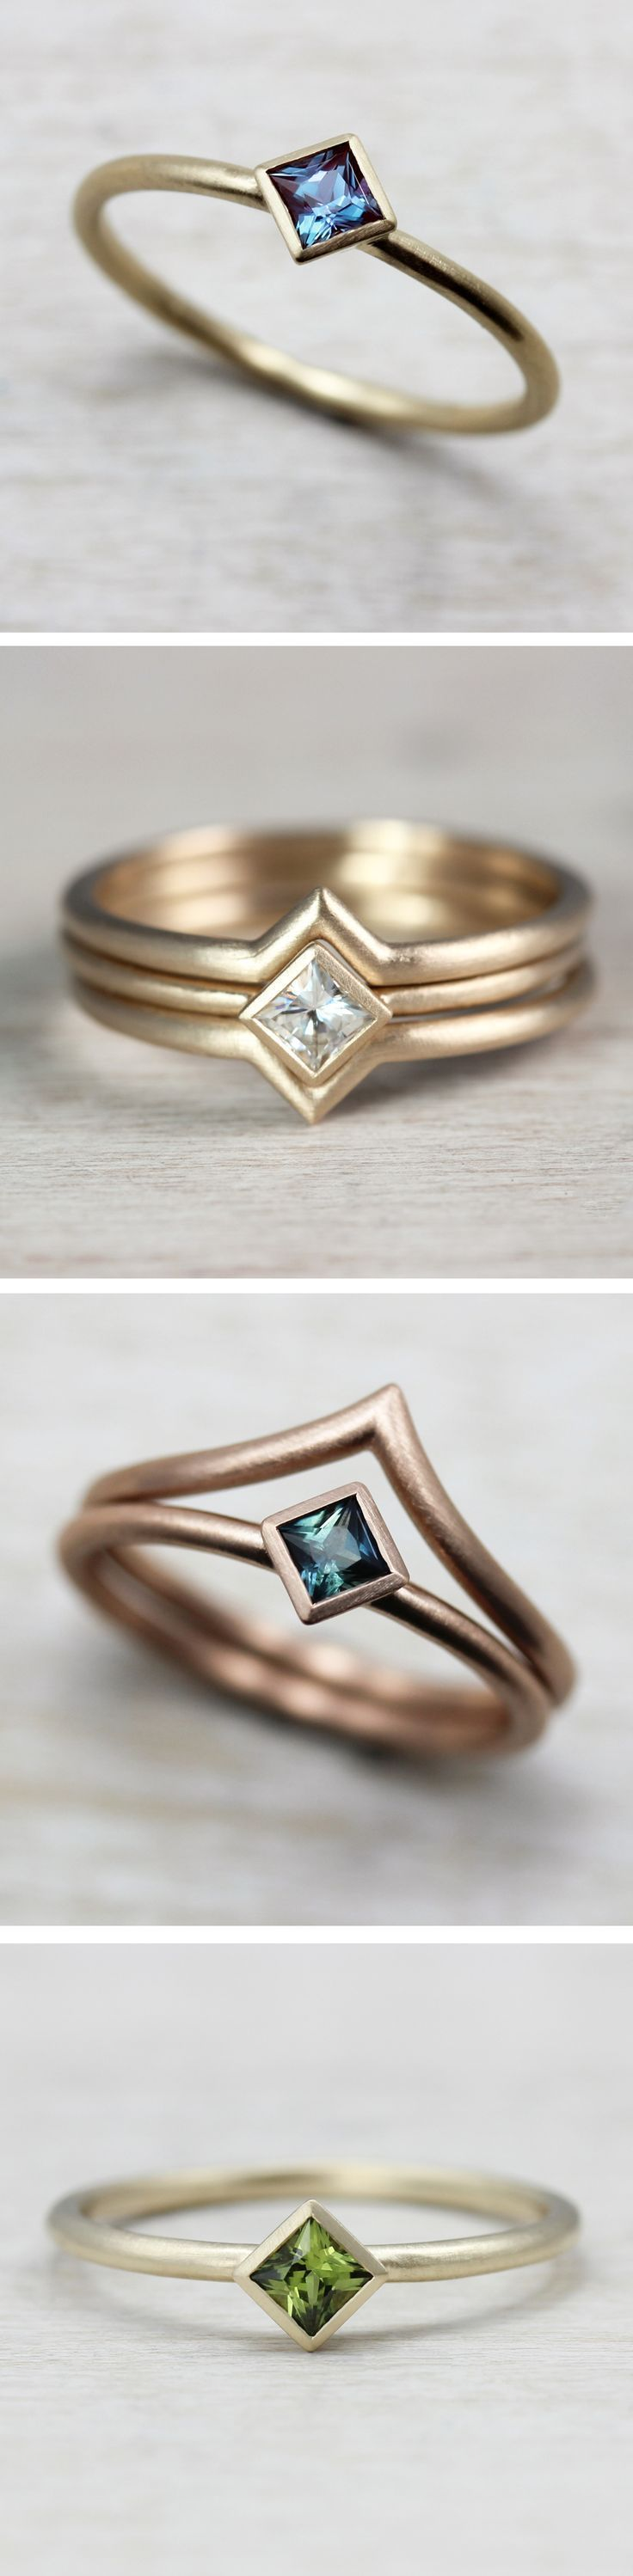 We love how versatile our Oblique Solitaire Engagement Ring is. Perfect for someone looking for a delicate, minimal, modern, and unique alternative engagement ring. Pictured from top to bottom: in 14k yellow gold with a Chatham alexandrite, in 10k yellow